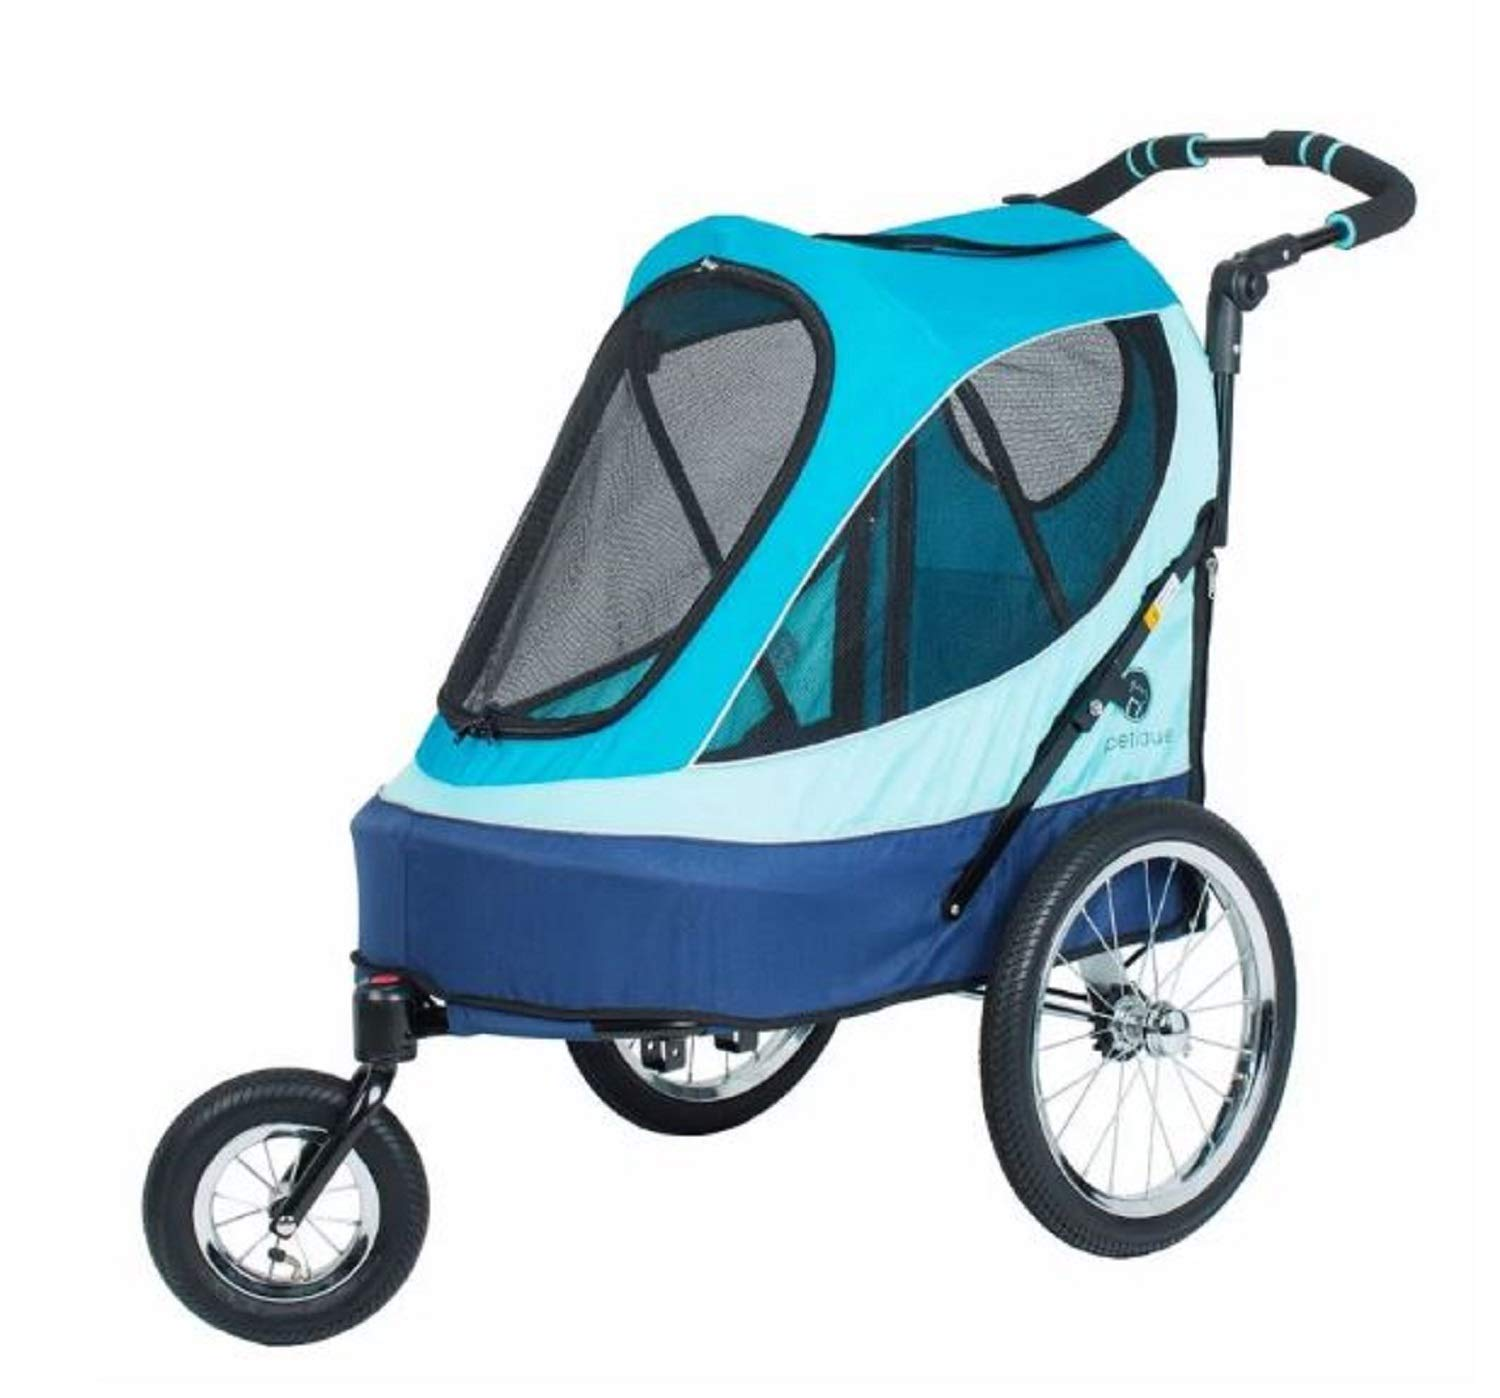 bluee Pet Jogger Stroller. 60 lb. Weight Capacity Foldable Pet Jogger Stroller (bluee)